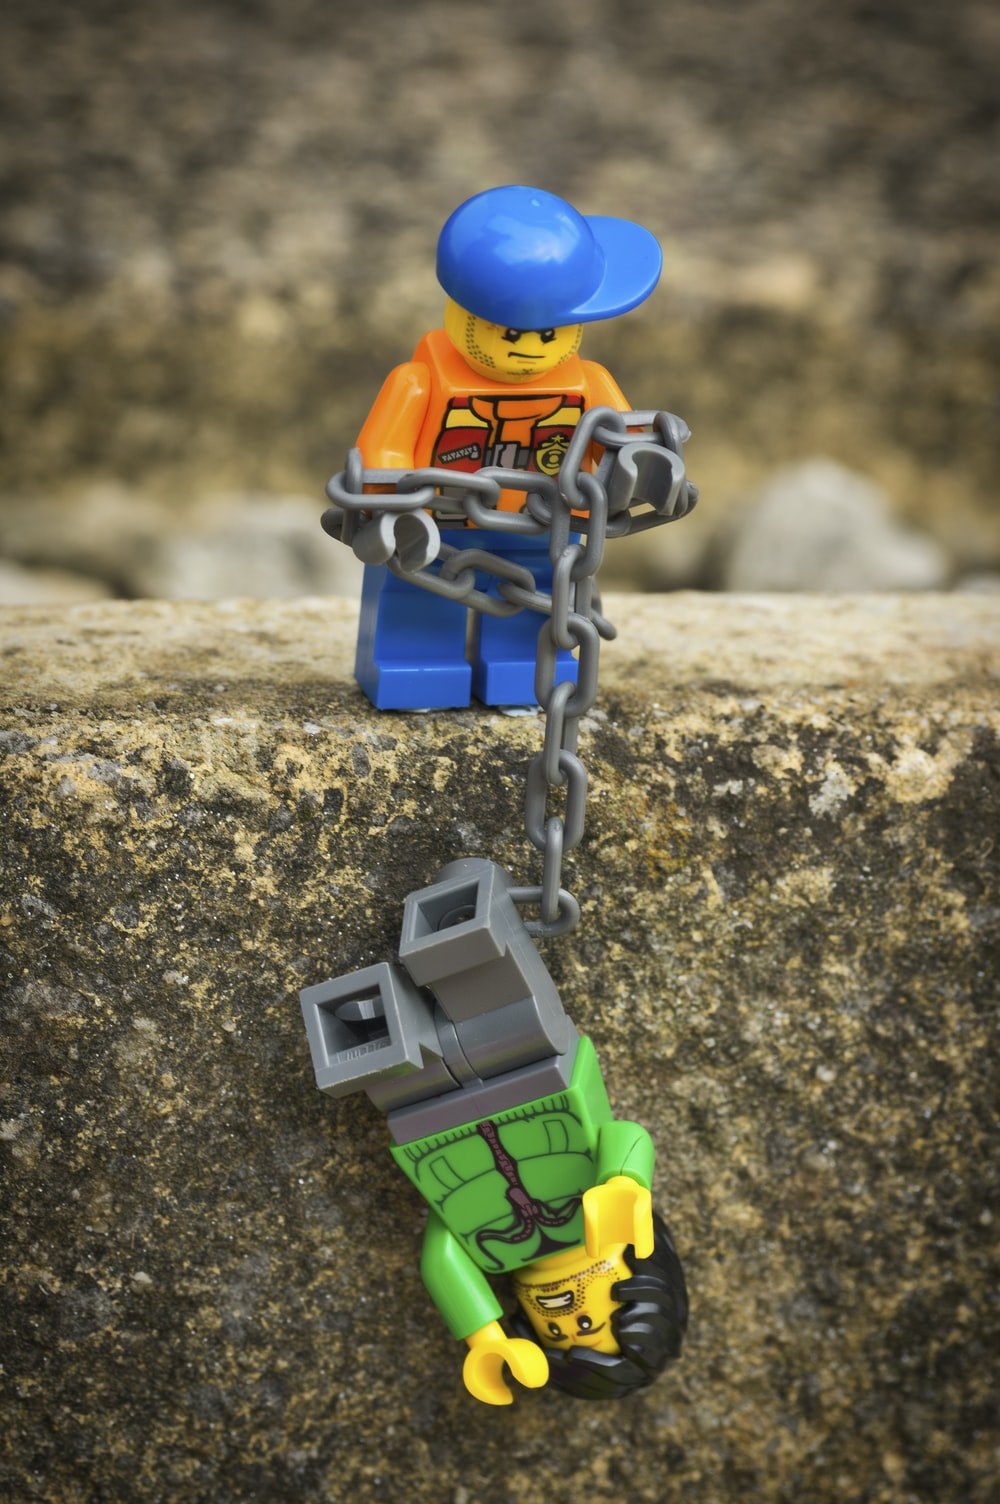 LEGO characters toy on gray concrete surface